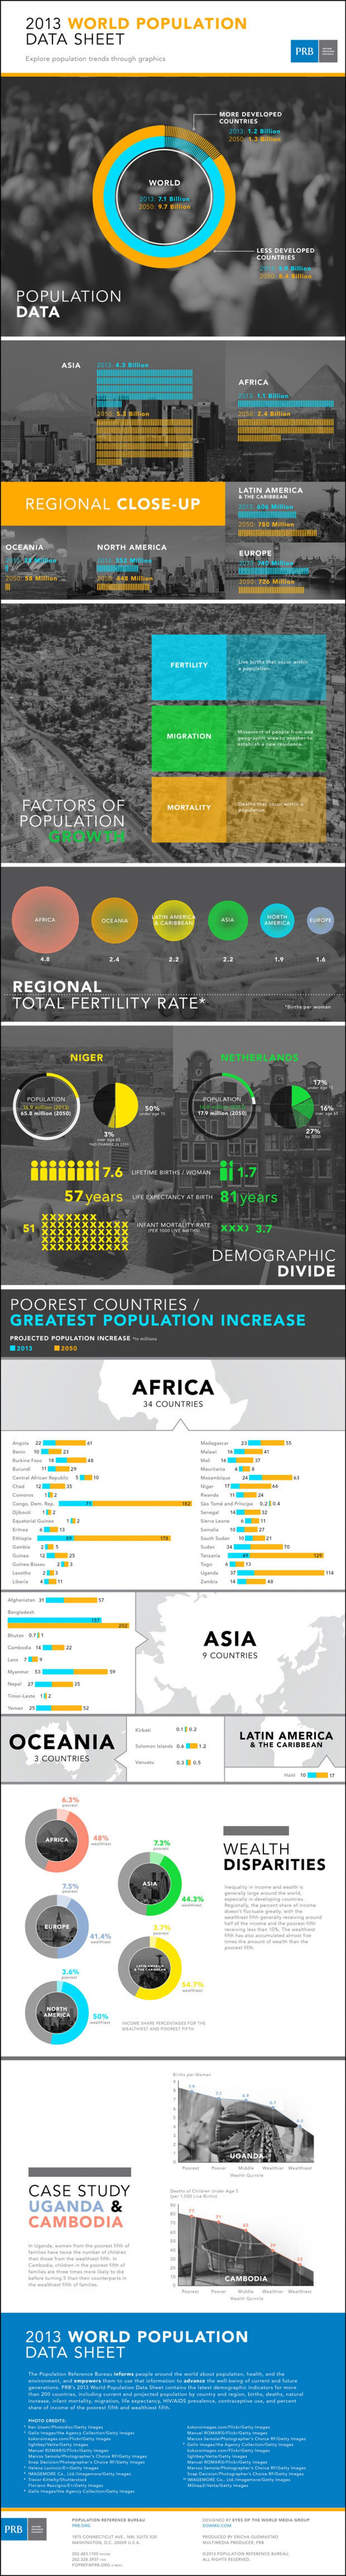 If the world were a village of 100 people lesson plan - Best 25 World Population Statistics Ideas On Pinterest Population In The World Population On Earth And Global World